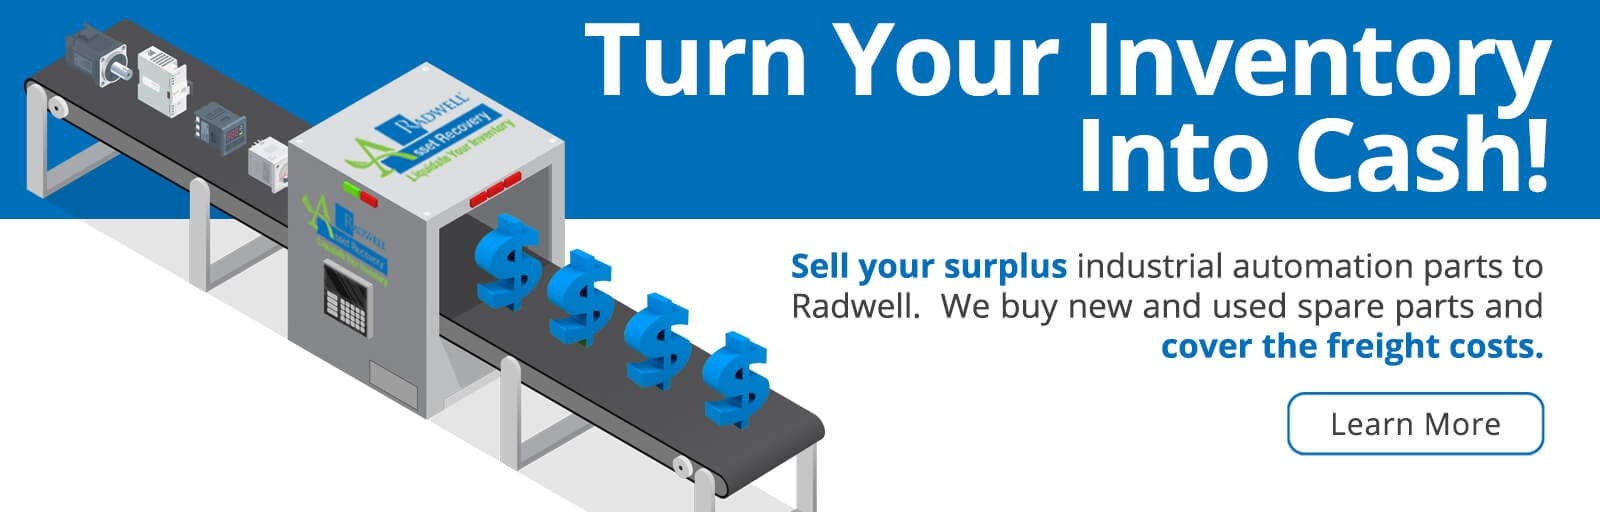 Turn Your Inventory Into Cash!